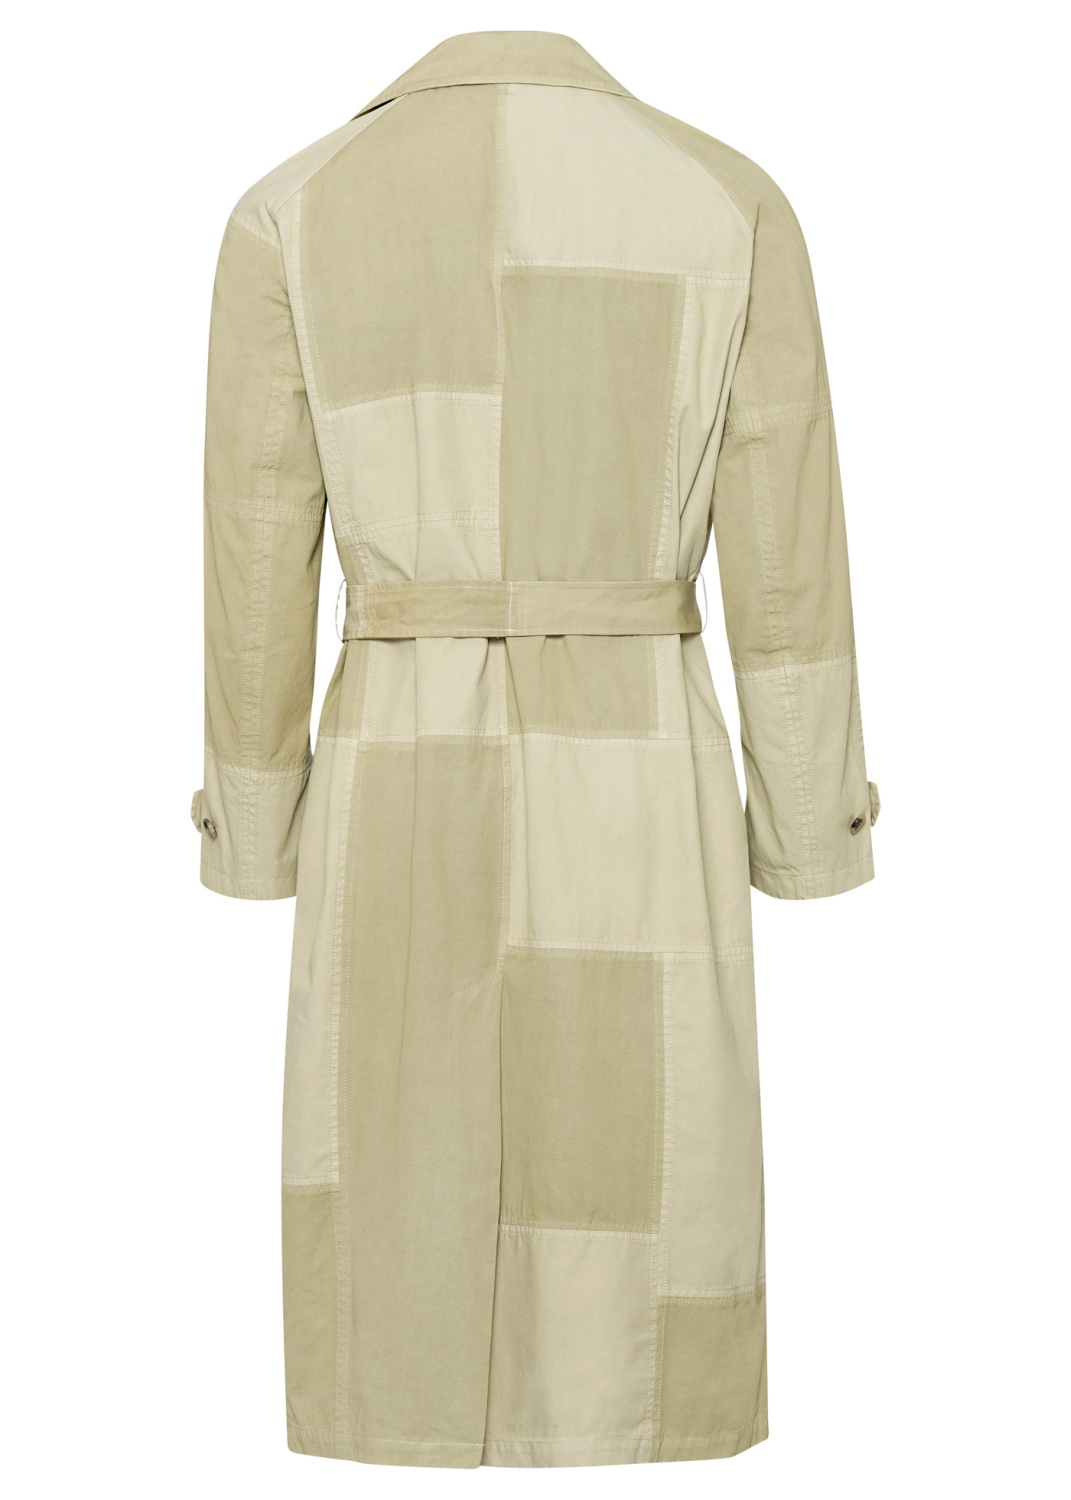 Trench Coat image number 1